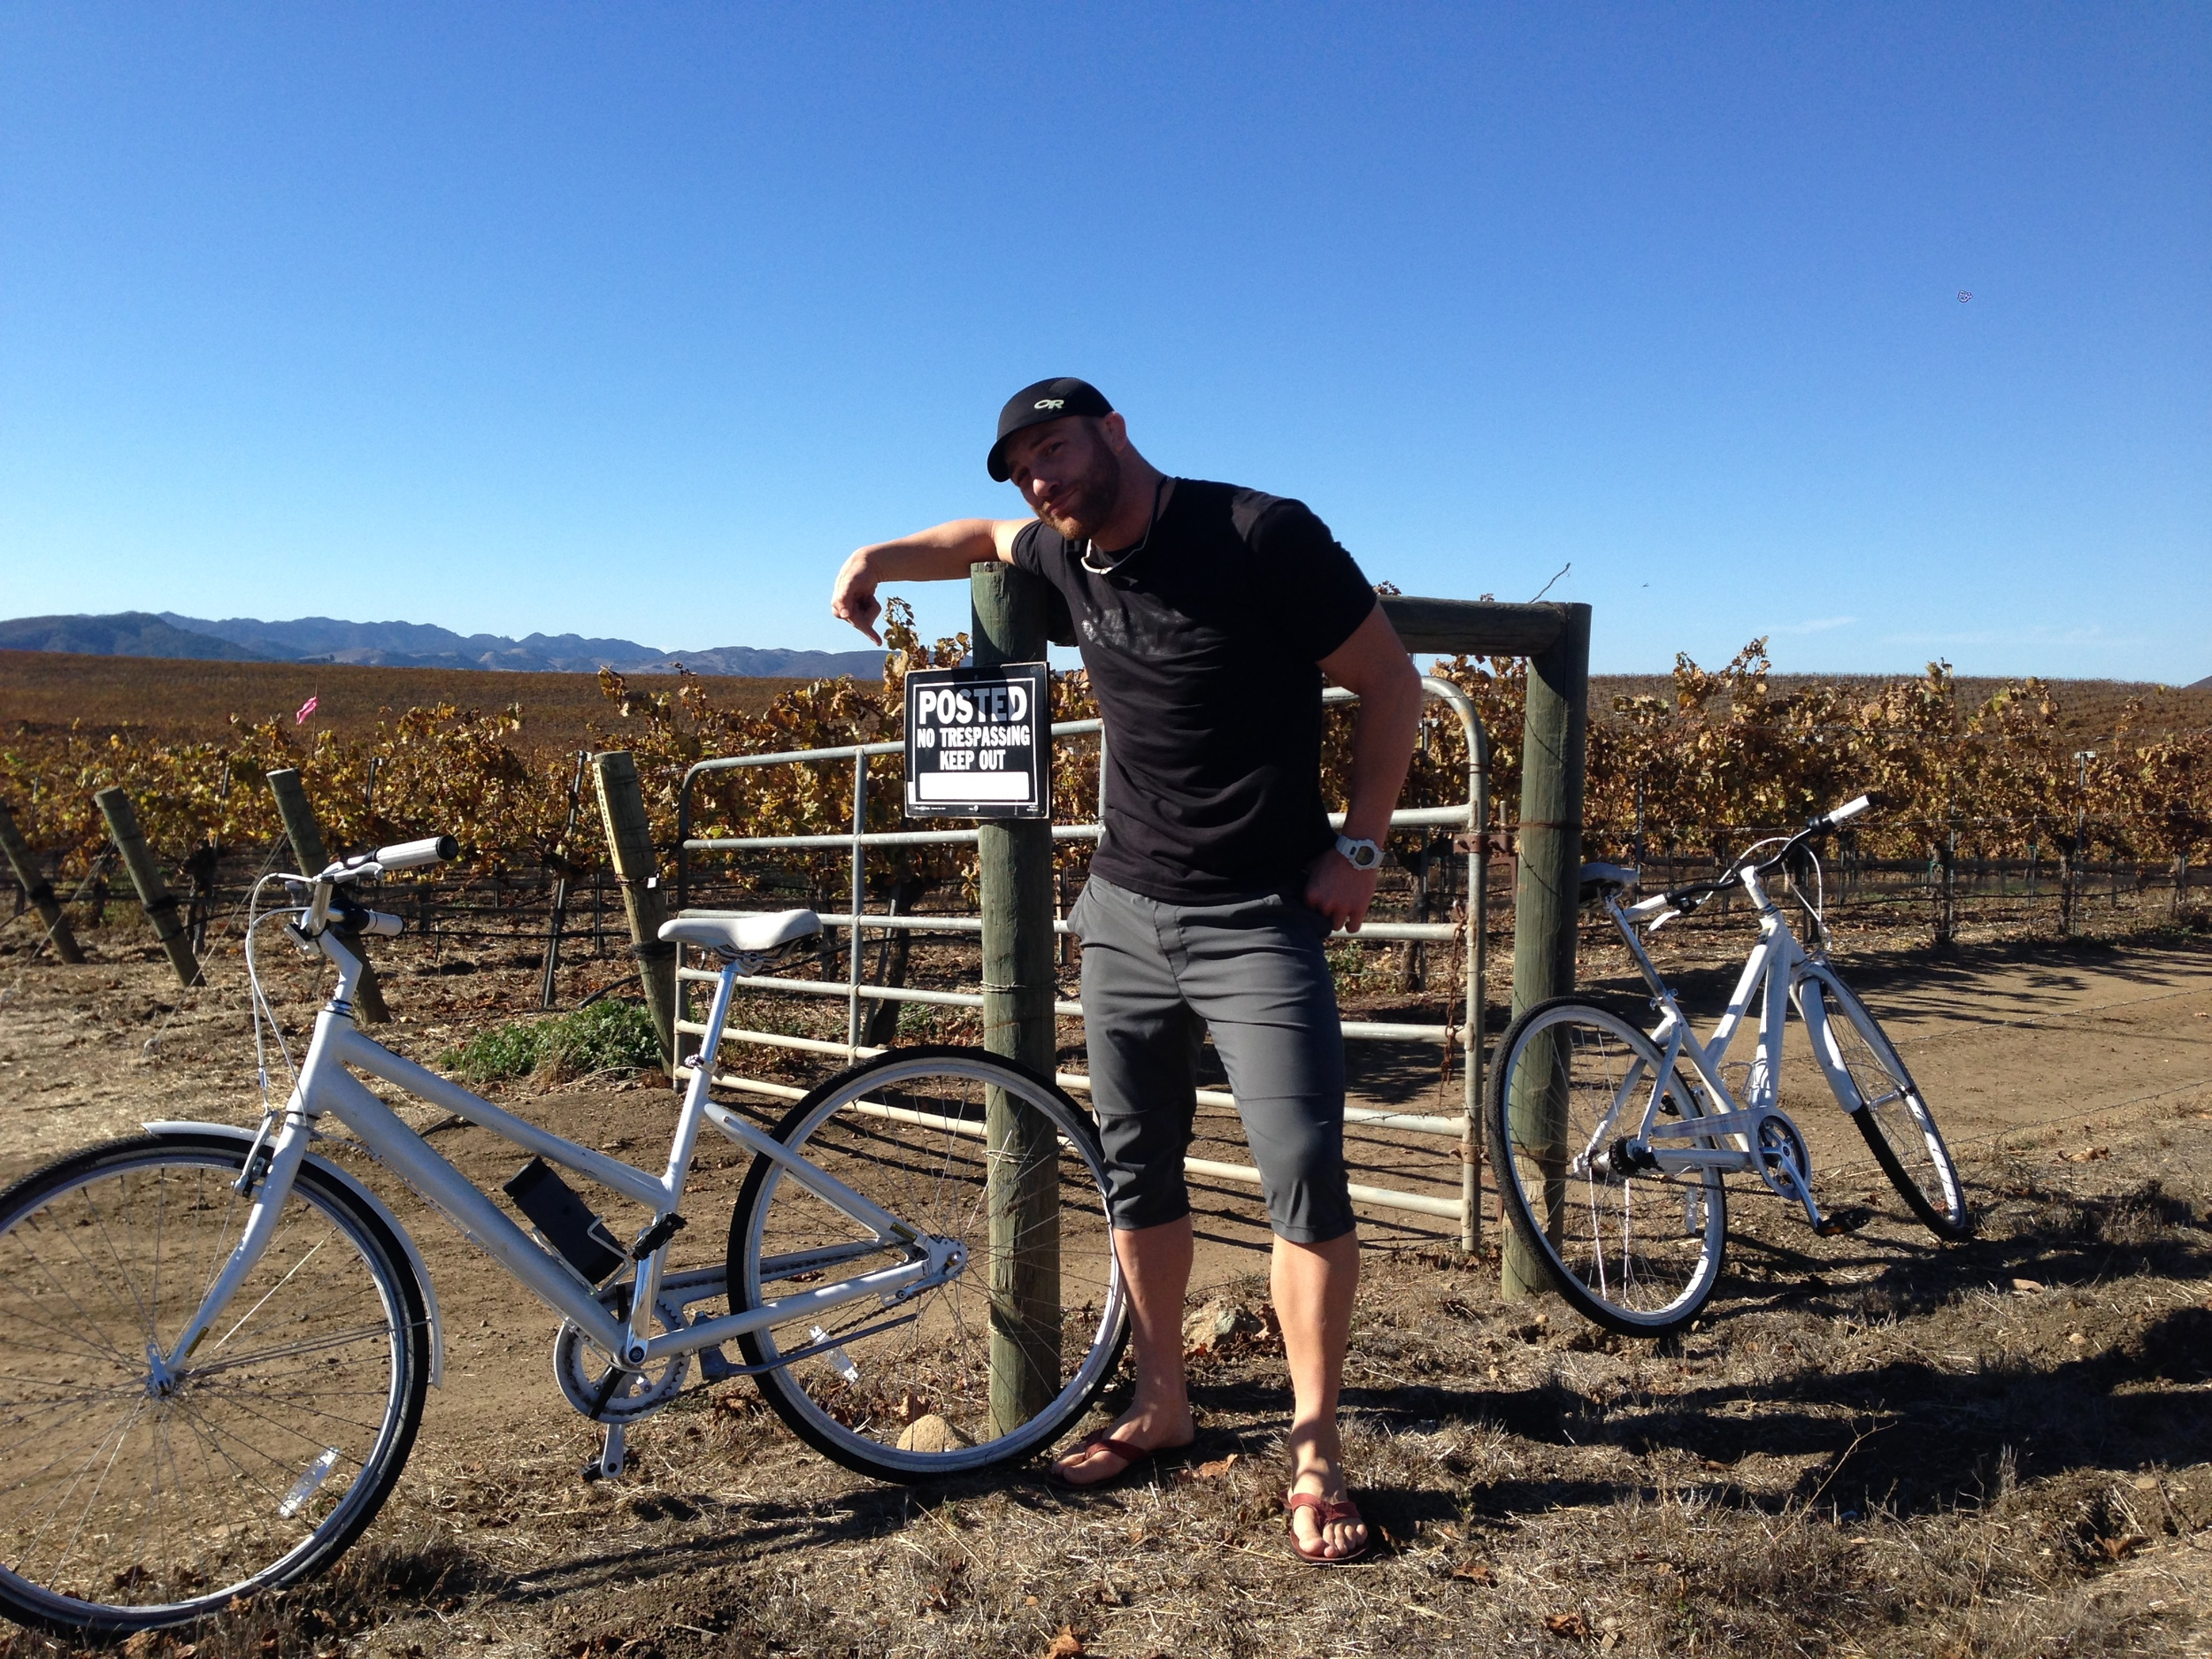 Wine country outlaw